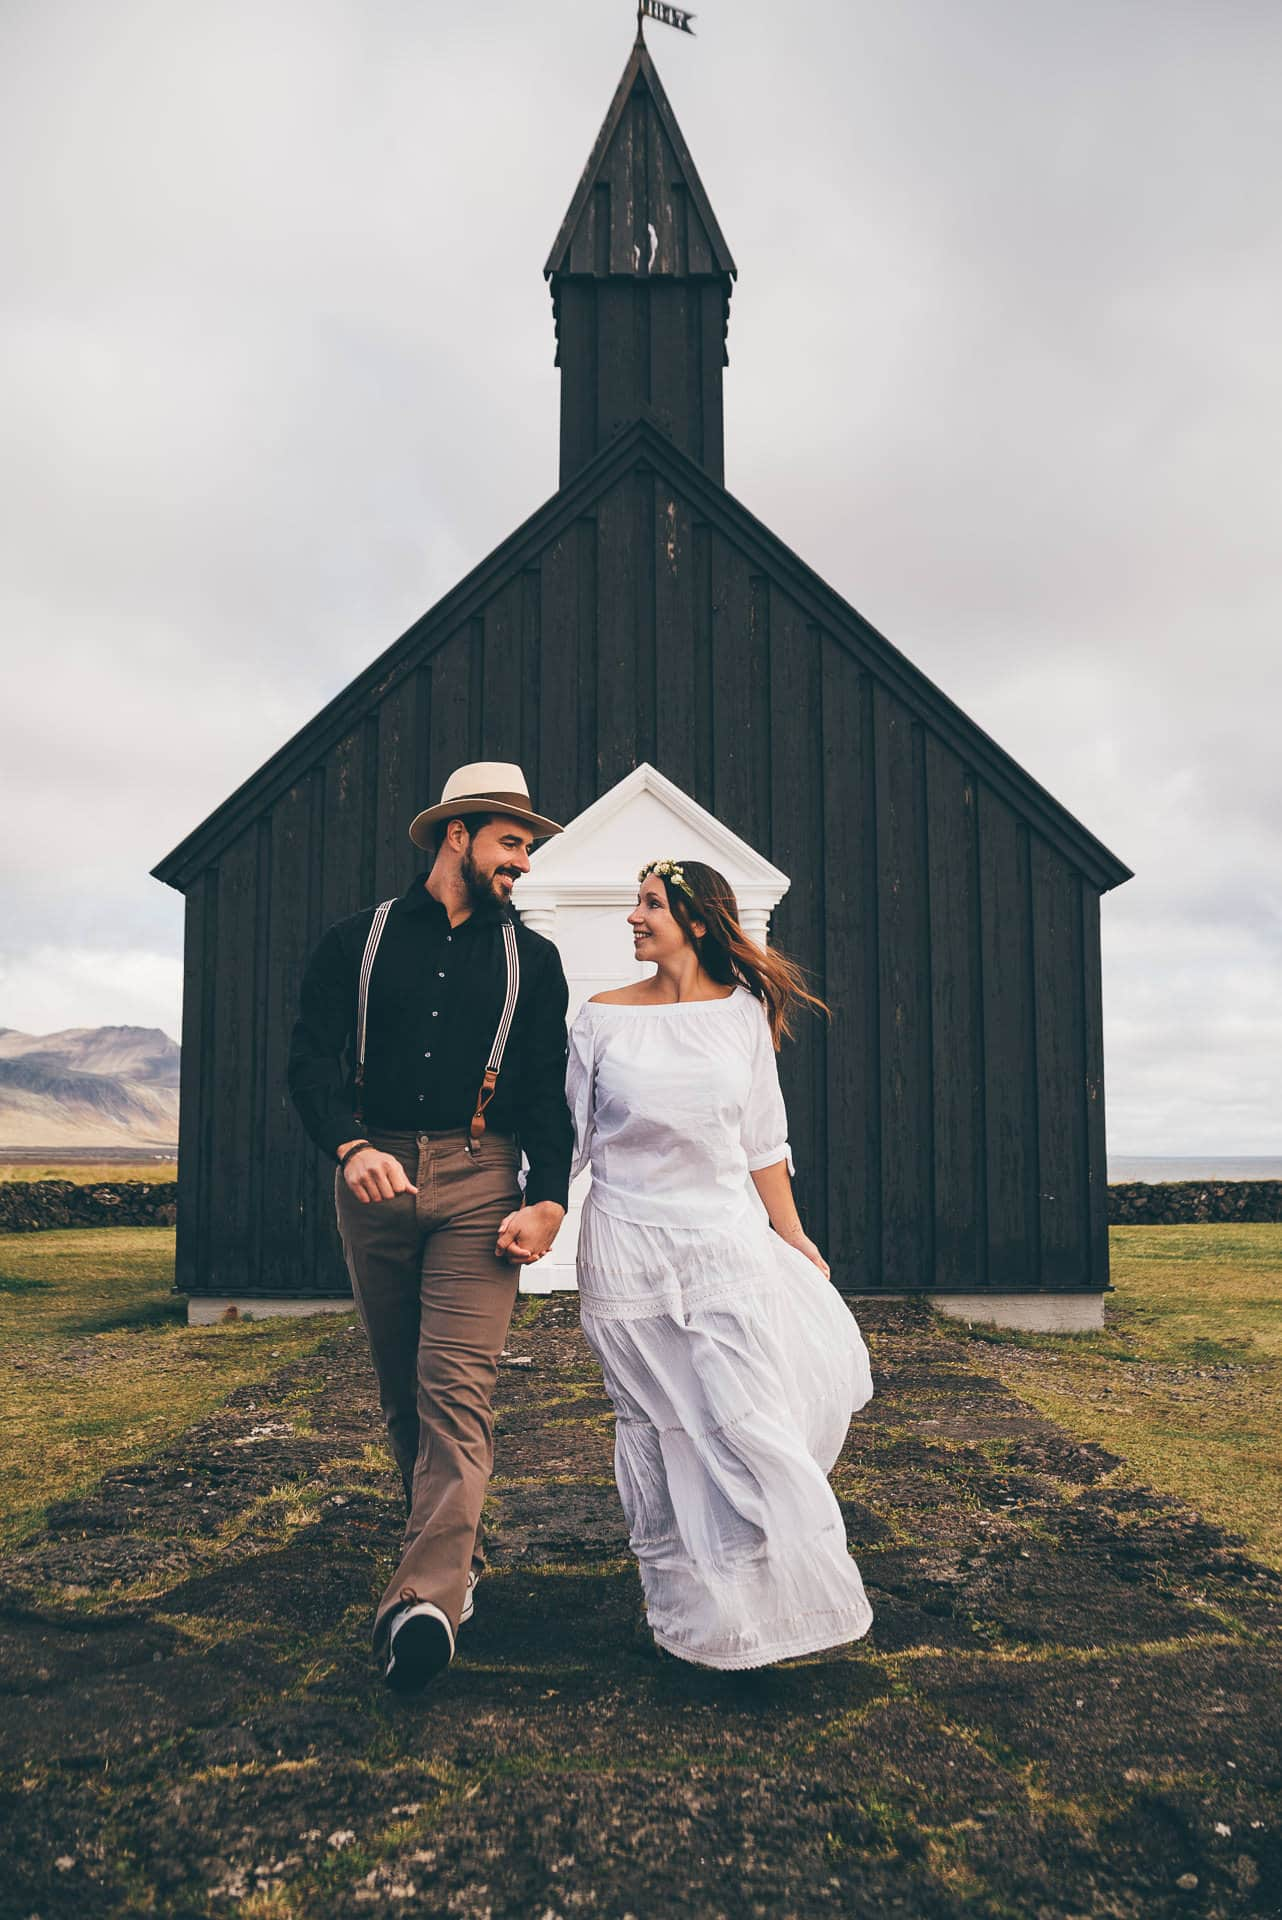 Destination-Wedding-Photographer-Iceland-Budir-BlackChurch-MathiasBrabetz-6